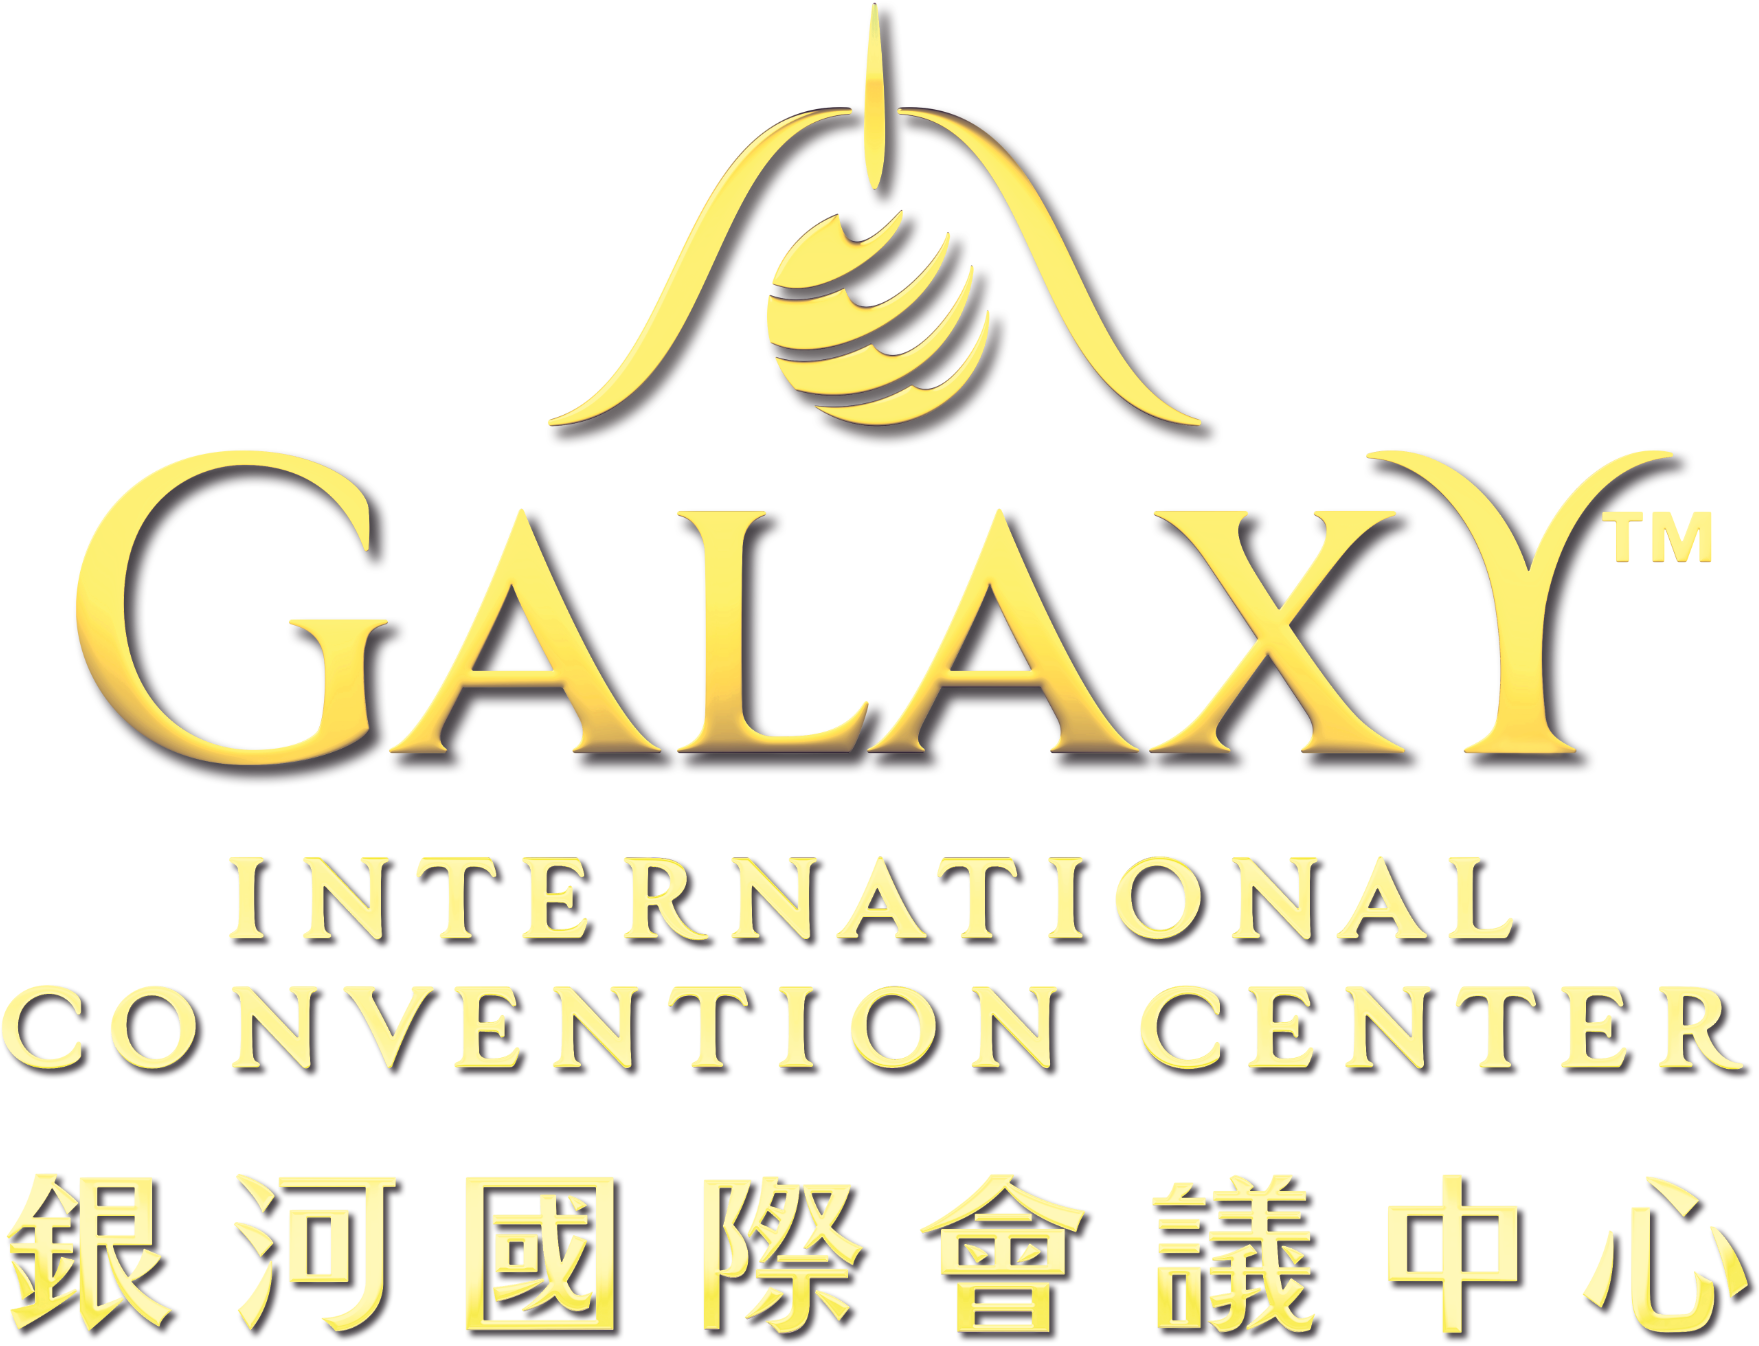 Galaxy International Convention Center